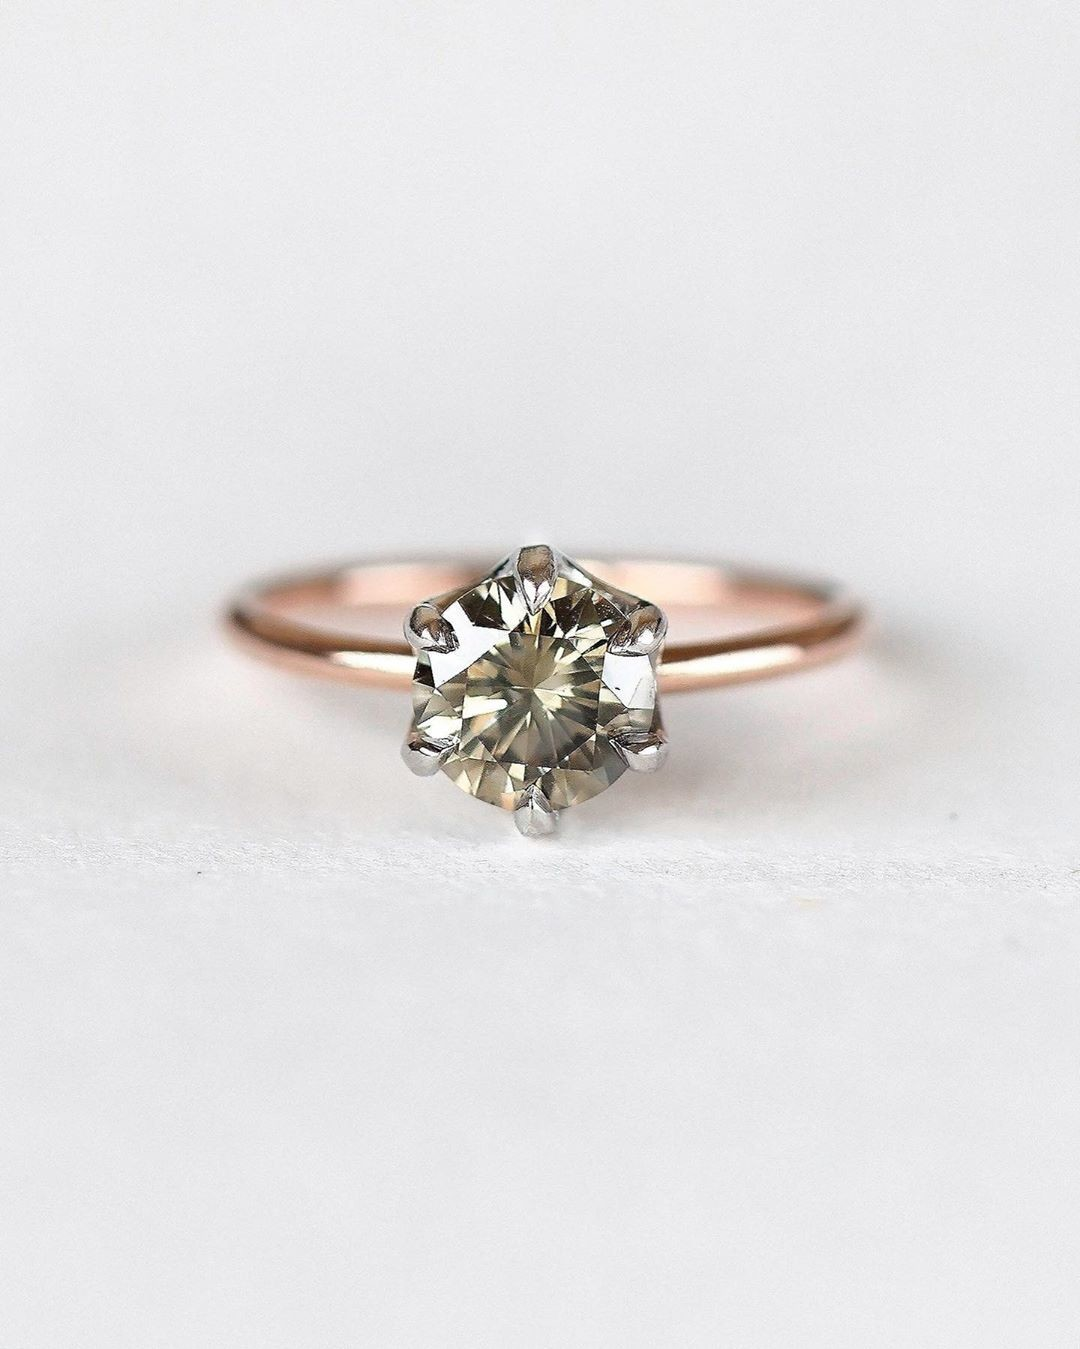 Unique & Rare Modern Vintage reclaimed fancy colored diamond and ethically handmade low-profile gold ring 💫💕✨